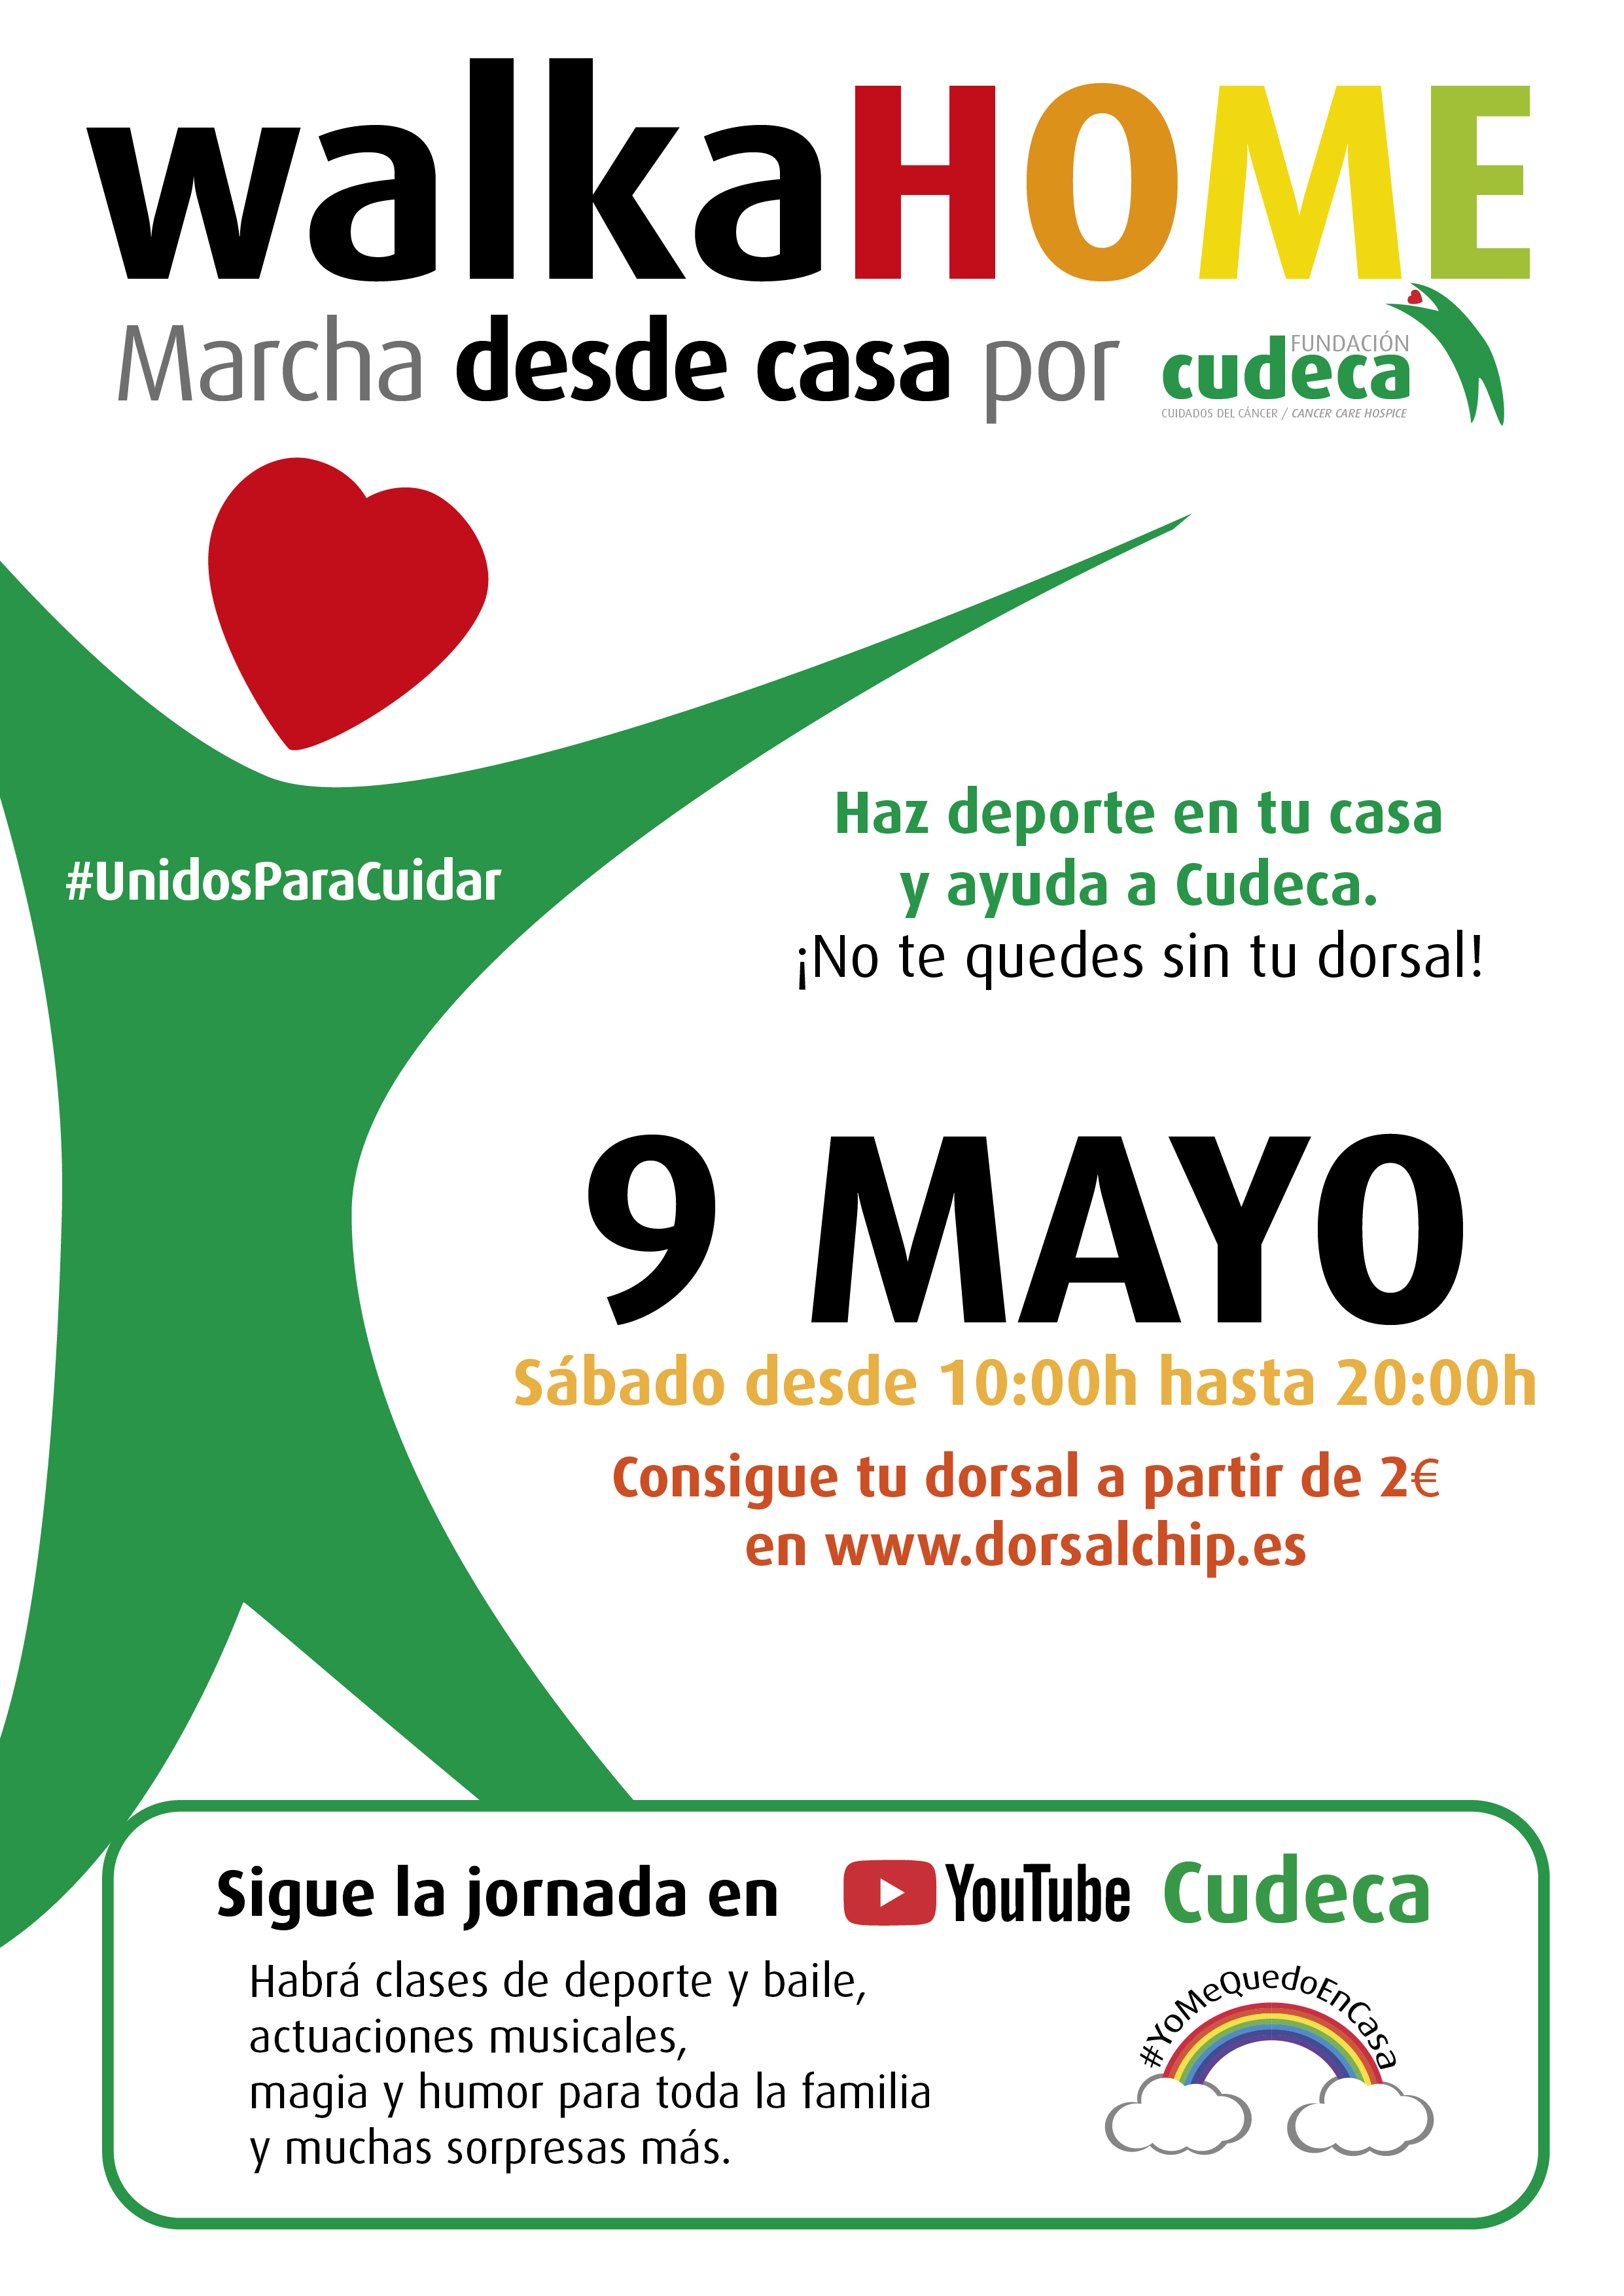 WalkaHOME, a walk at home for Cudeca Hospice